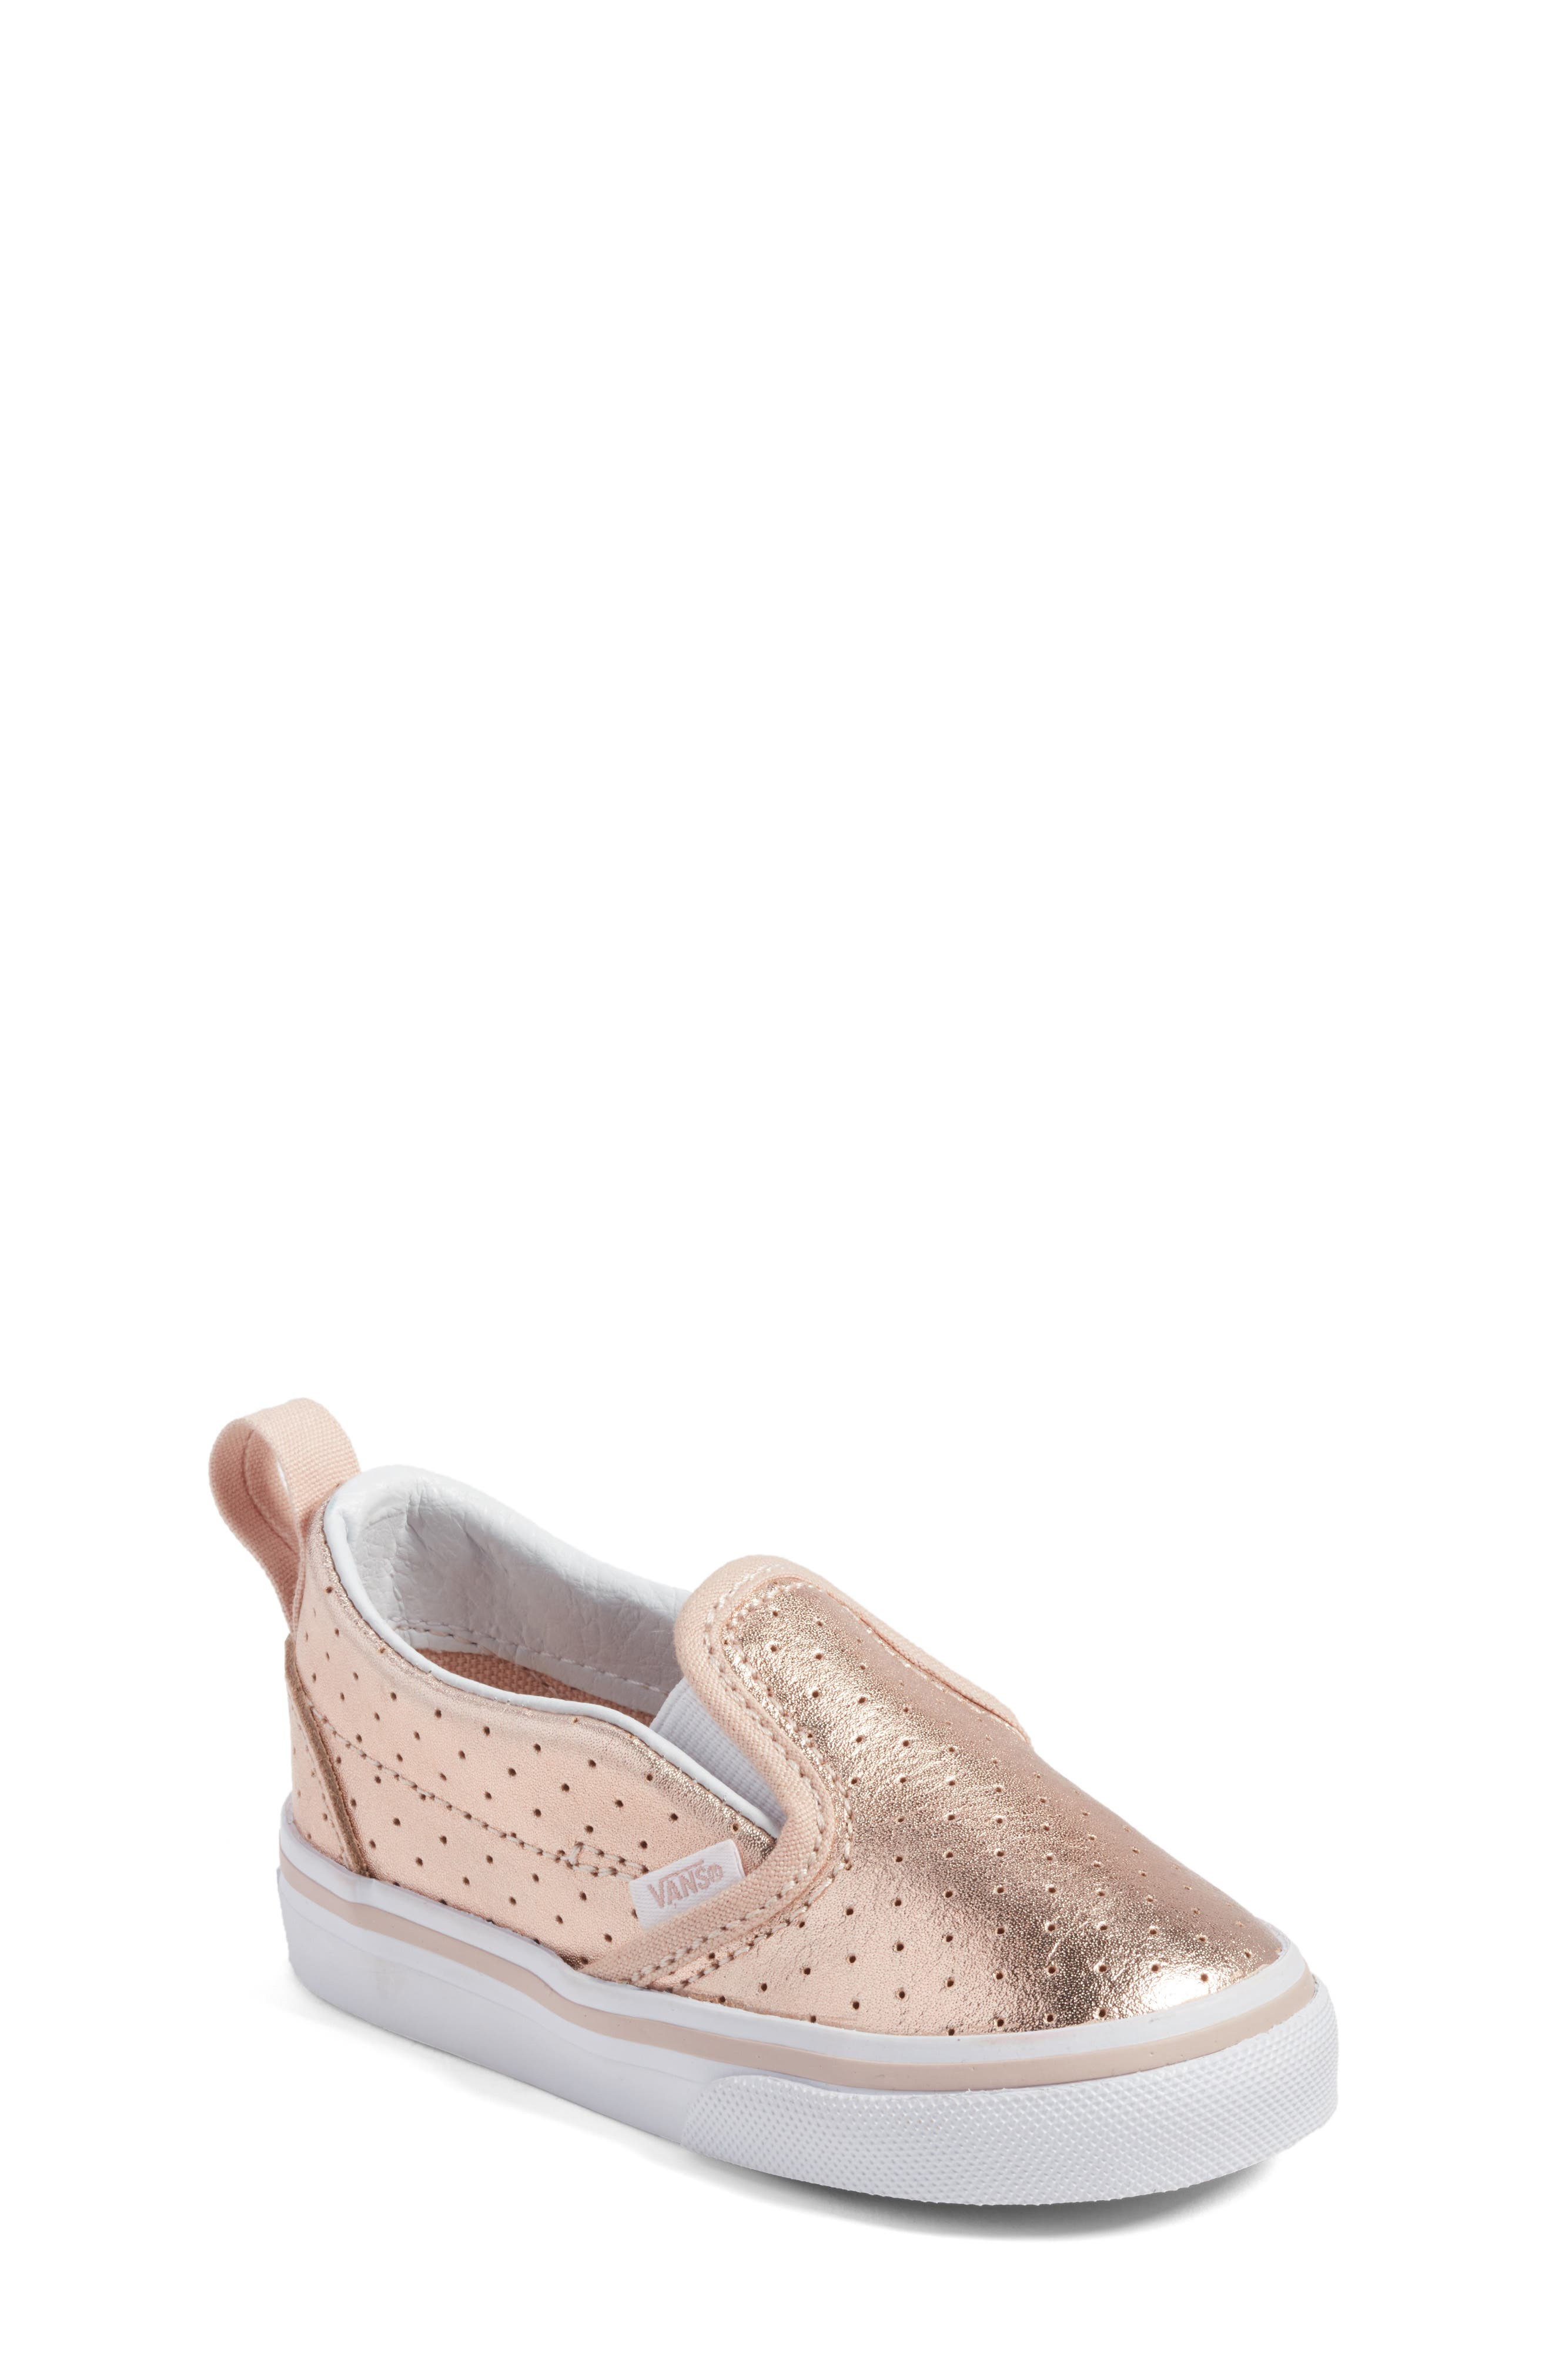 'Classic' Slip-On Sneaker,                         Main,                         color, Rose Gold Perf Leather